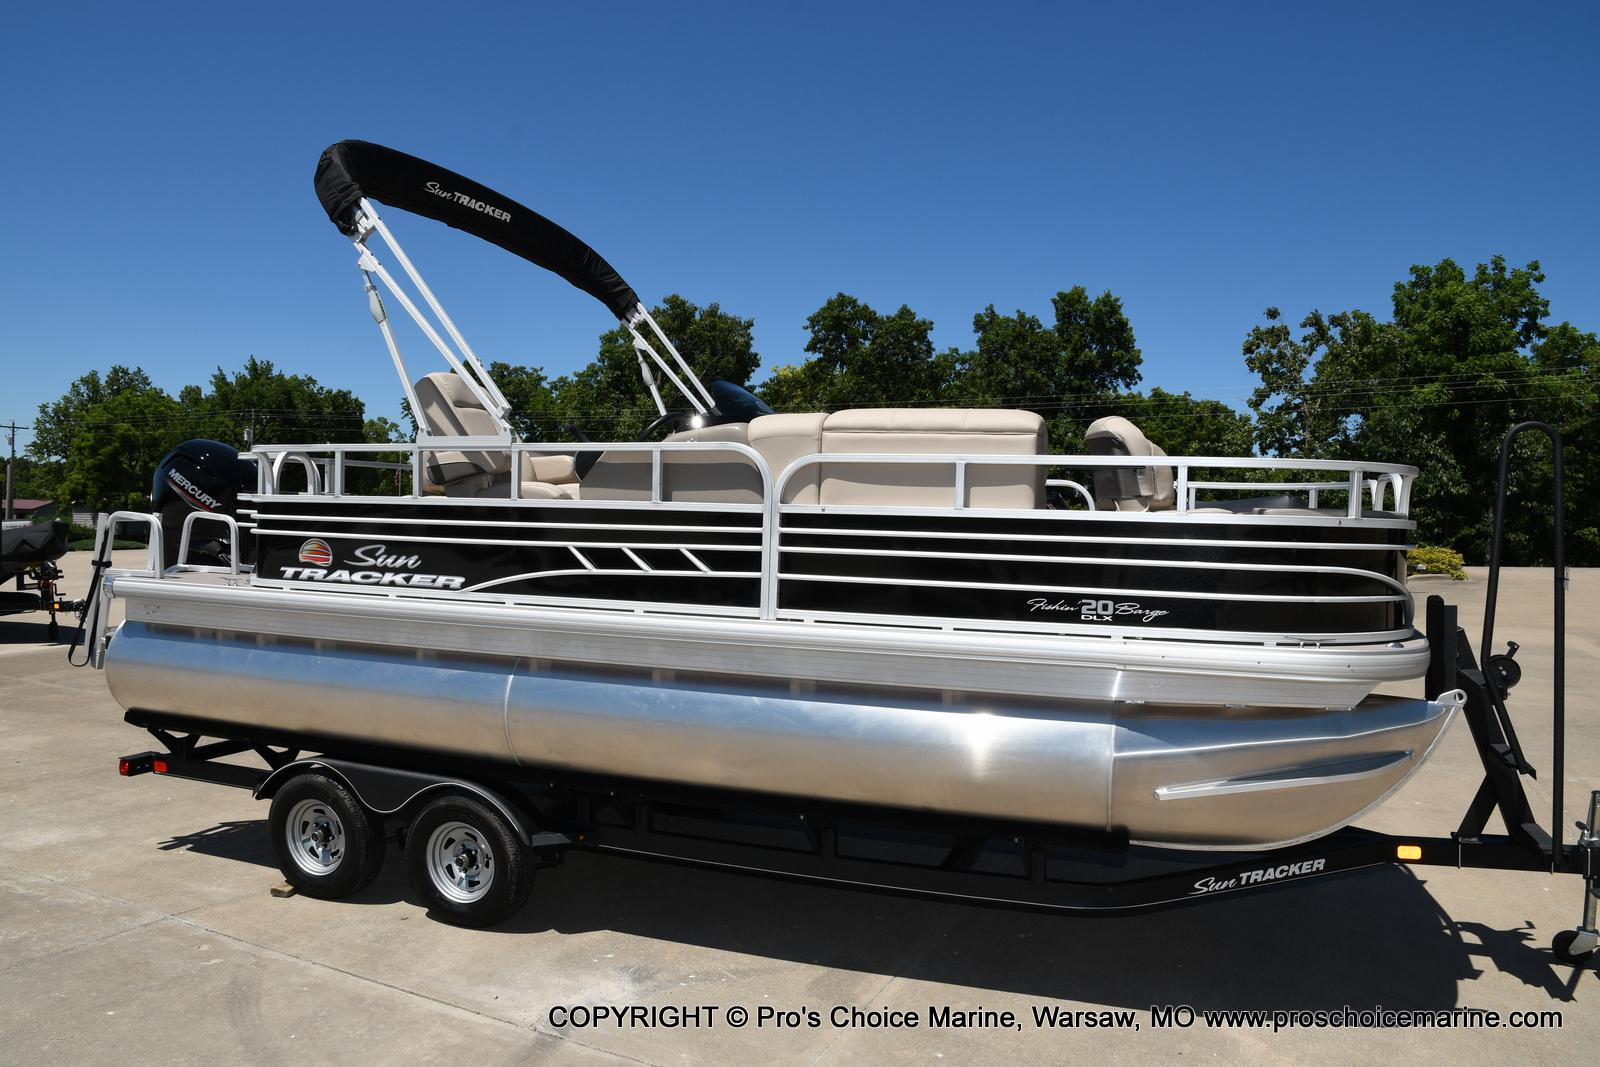 2021 Sun Tracker boat for sale, model of the boat is Fishin' Barge 20 DLX & Image # 25 of 50